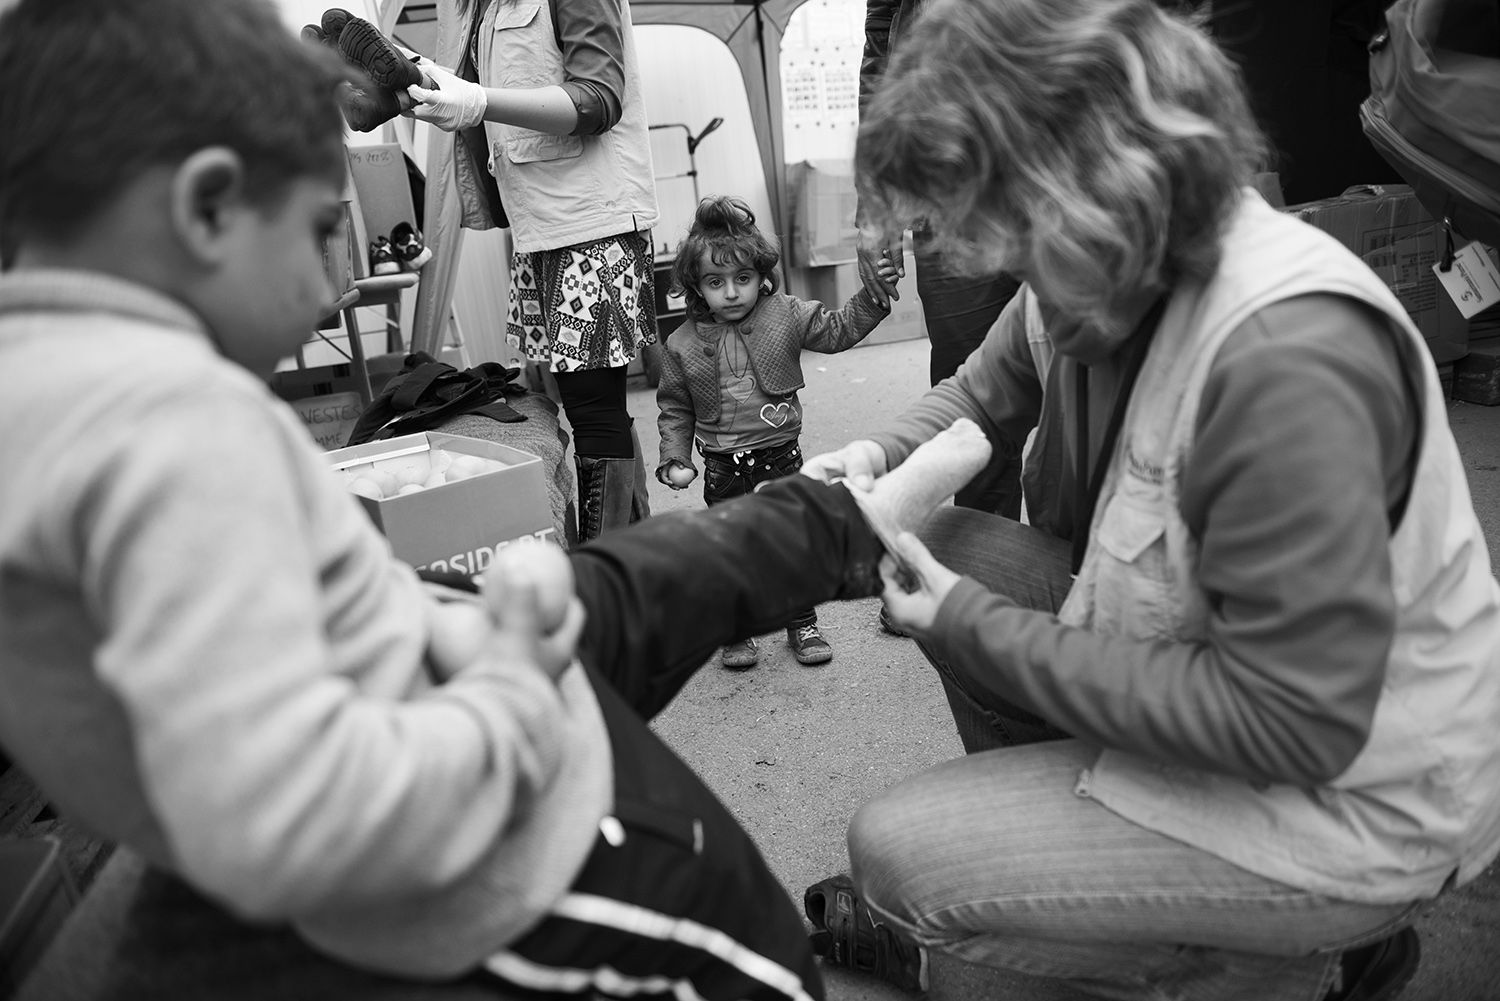 A little girl is standing with her parents while a member of a humanitarian organization puts on socks to her brother at the reception center in Opatovac, near the town of Tovarnik Croatia. Some of the children during the journey were left without shoes and socks, some children is replaced wet shoes for dry shoes. After registering, the refugees continue their way to Slovenia, most refugees want to get to Germany.